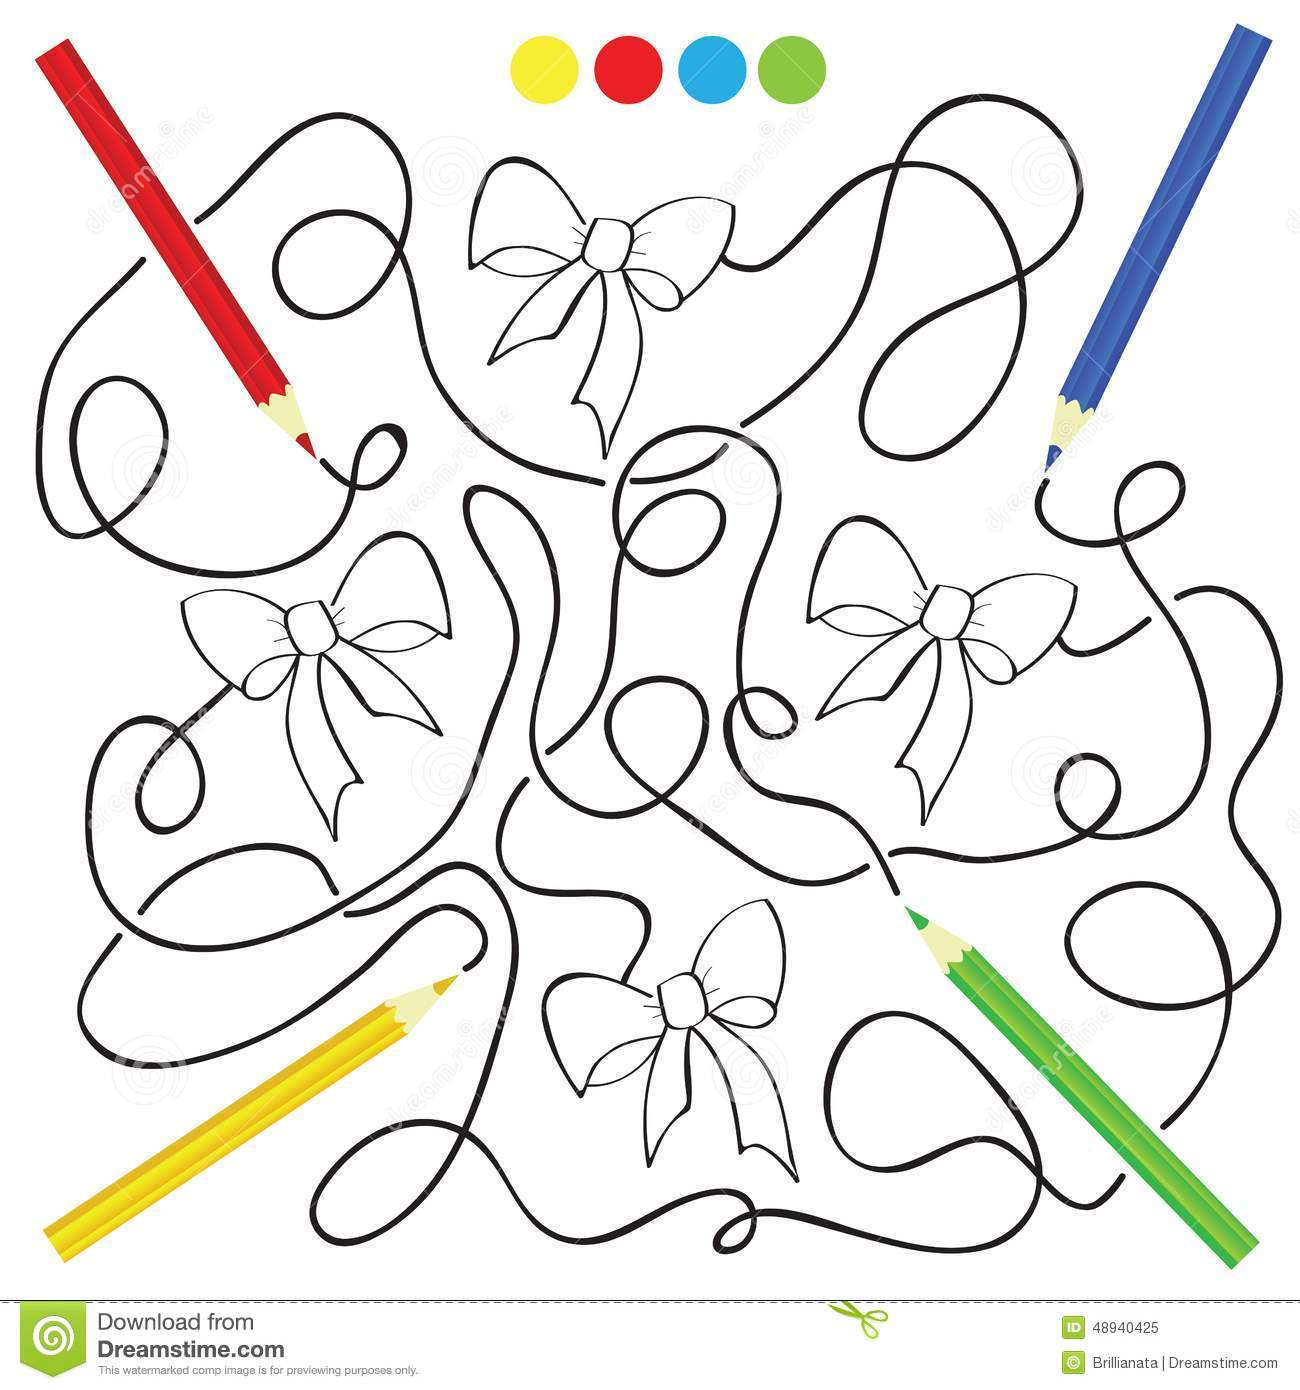 activity coloring - Coloring Activity For Kids